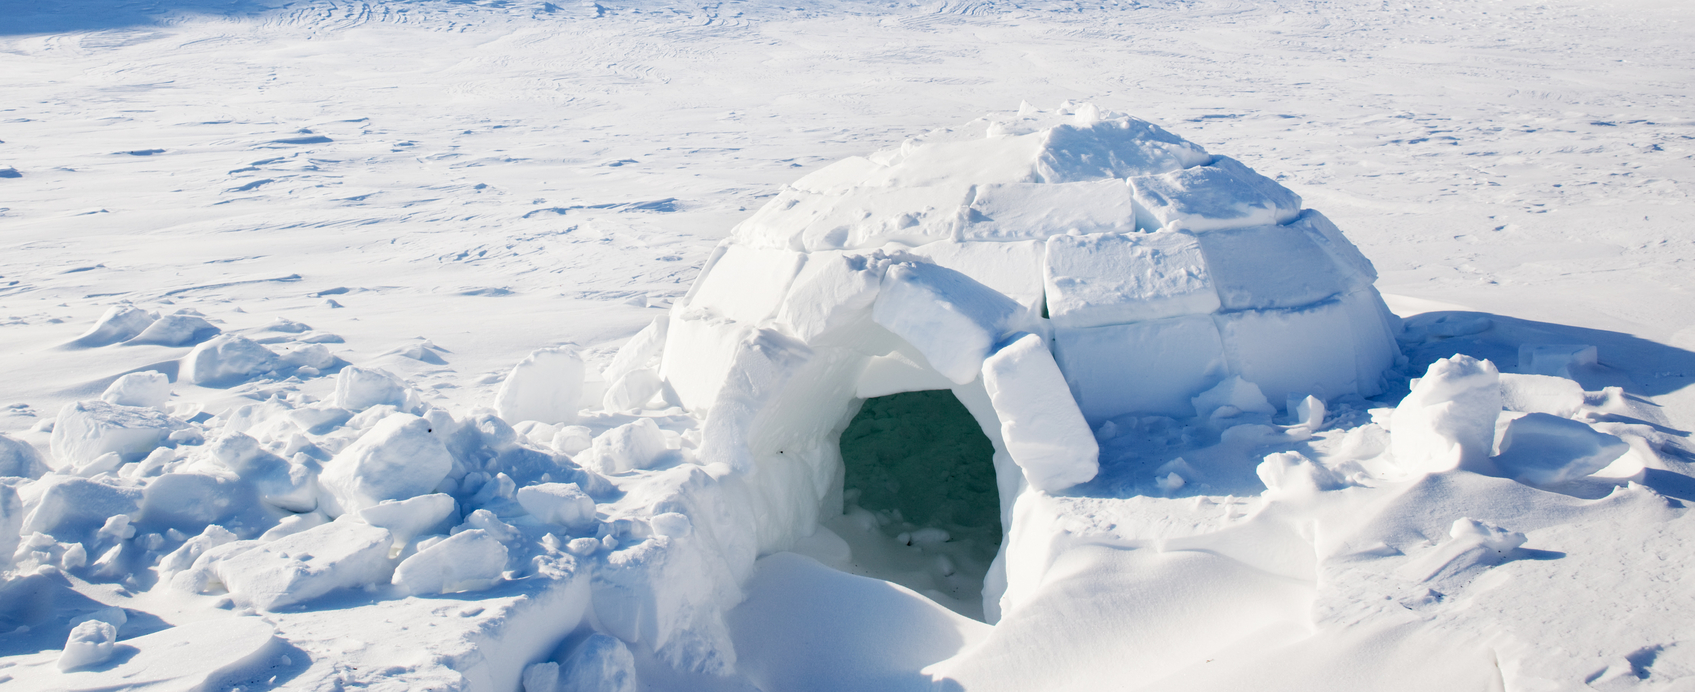 igloo-challenge-moutain-neige-team-building-hiver